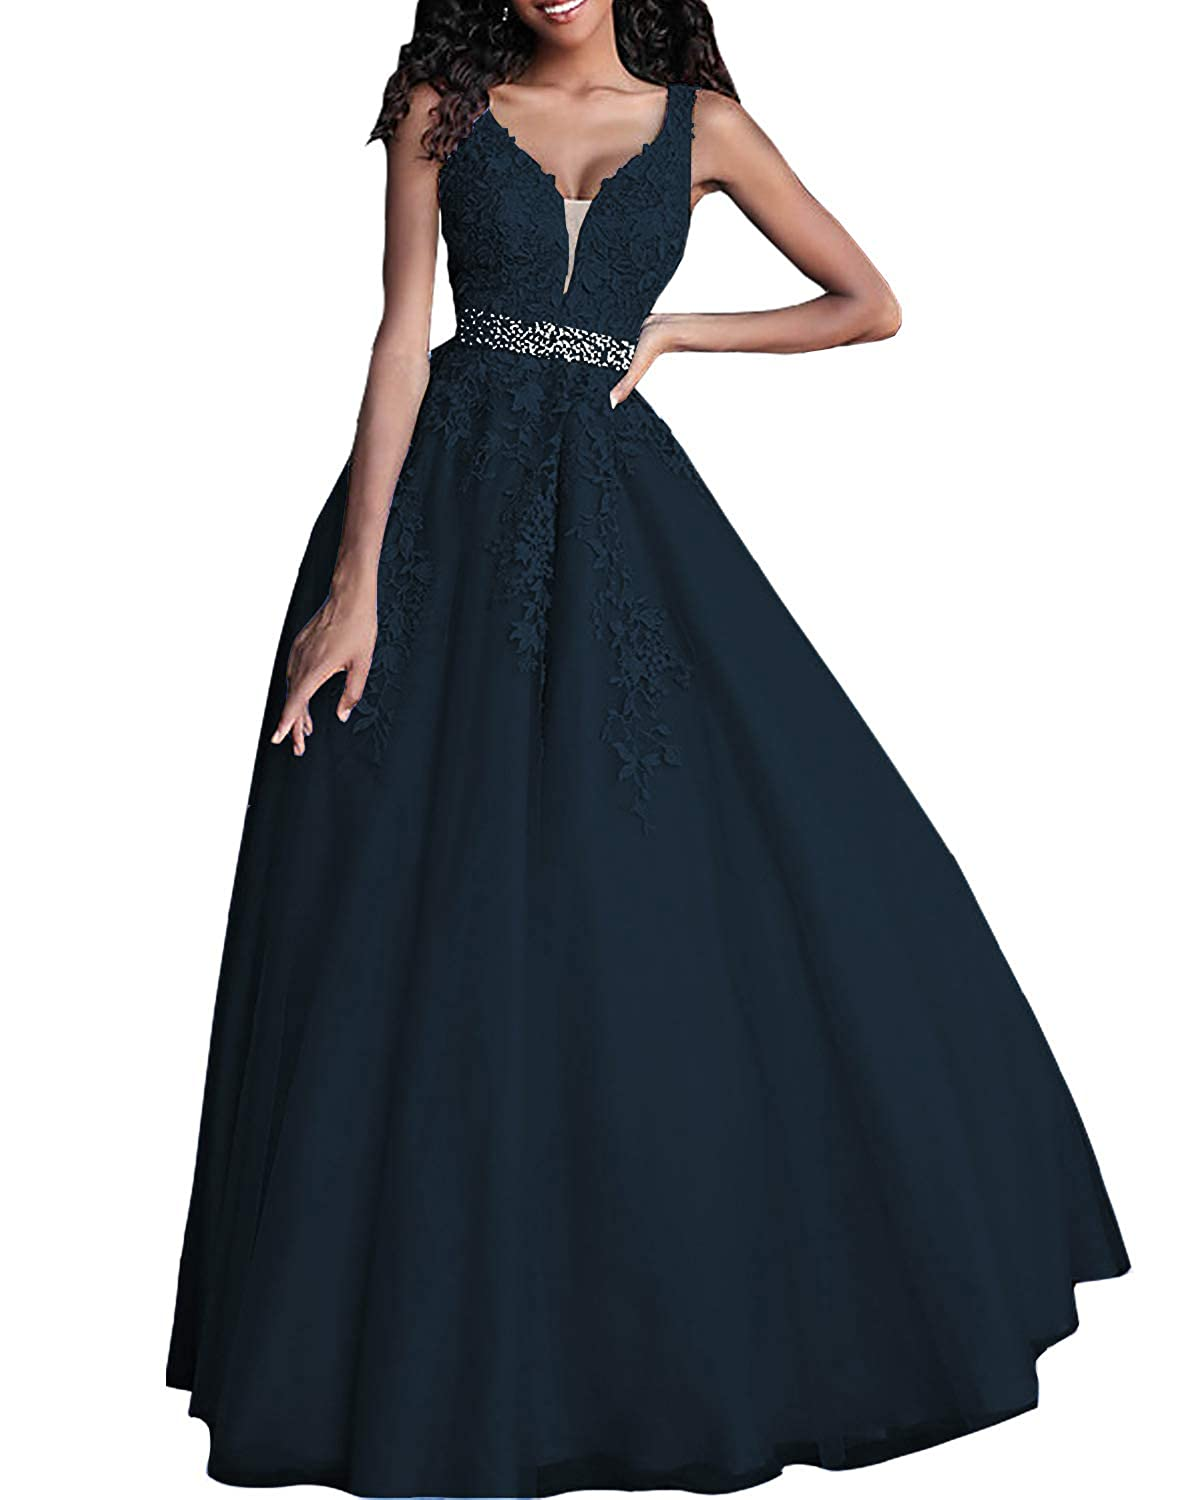 Navy bluee CCBubble Long Lace Appliques Prom Dresses Double V Neck Evening Formal Wedding Party Gowns